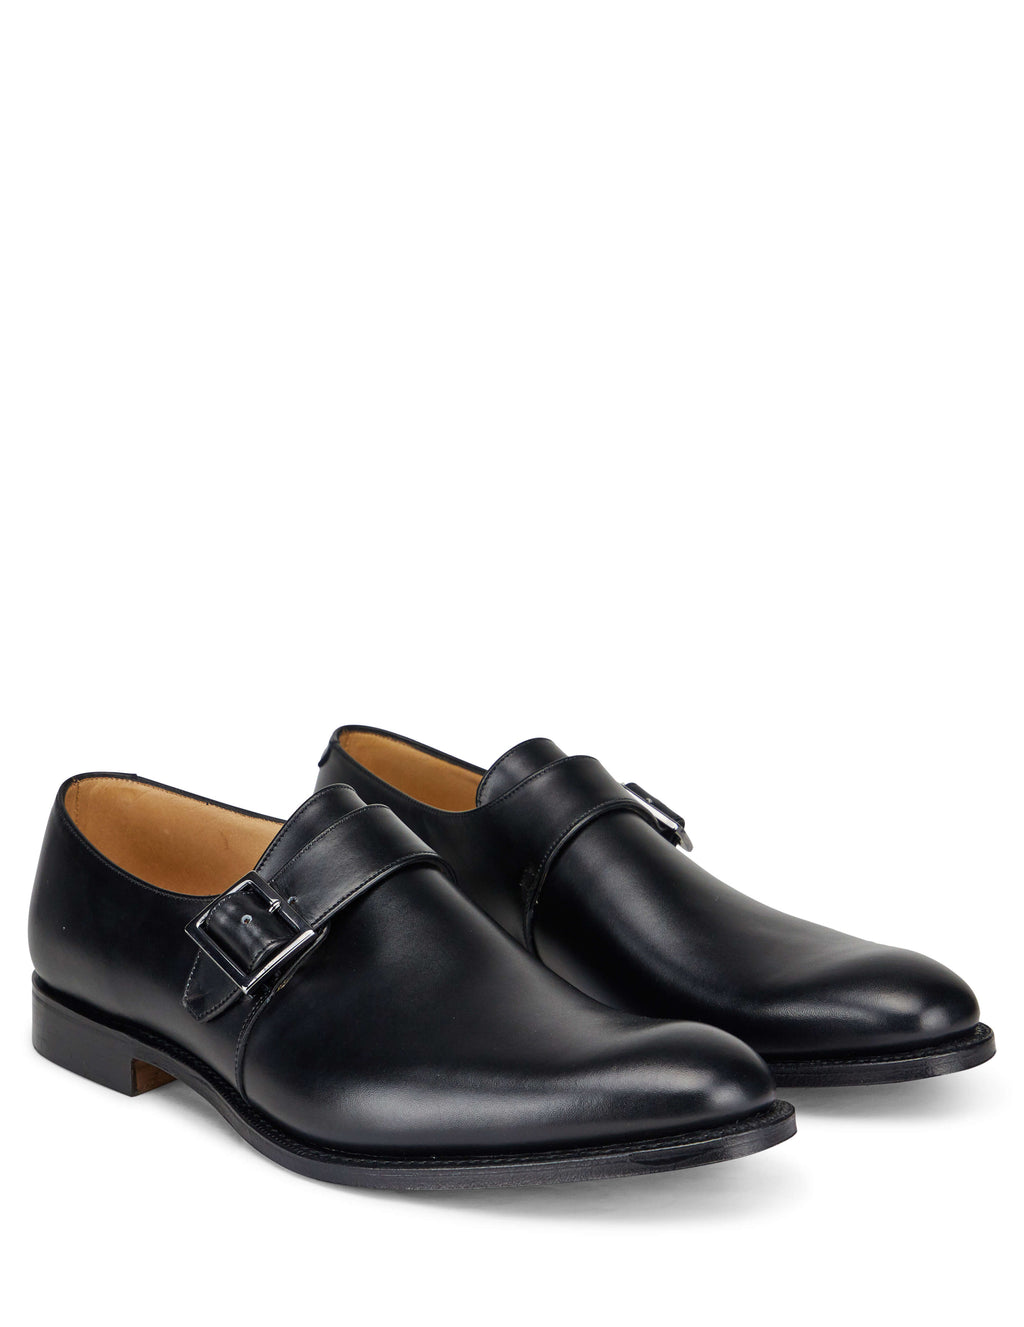 Church's Men's Giulio Fashion Black Becket Monk Shoes EOB0529AFWF0AAB